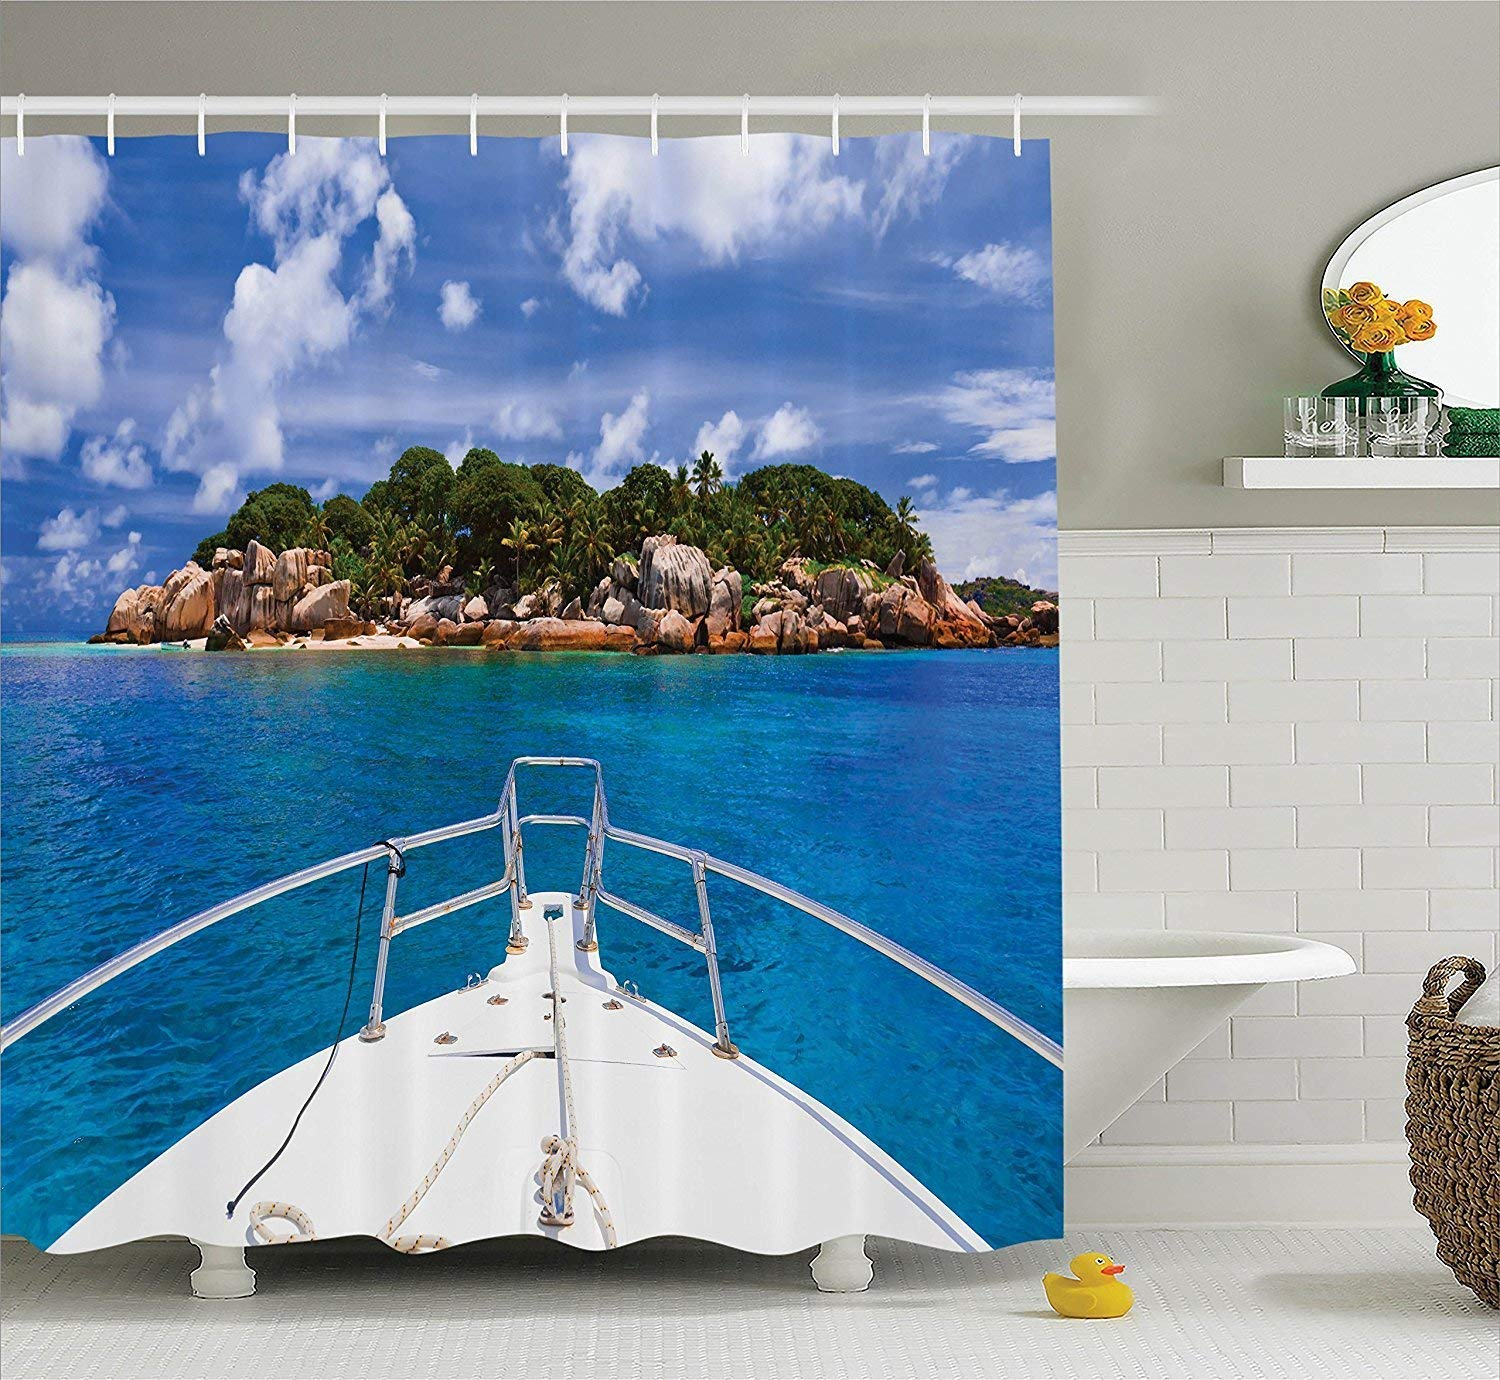 werert Sailboat Decor Shower Tropical Curtain Set, Tropical Shower Island and Boat Exotic Journey Traveling Destinations Holidays, Bathroom Accessories 72 X 72 73858a